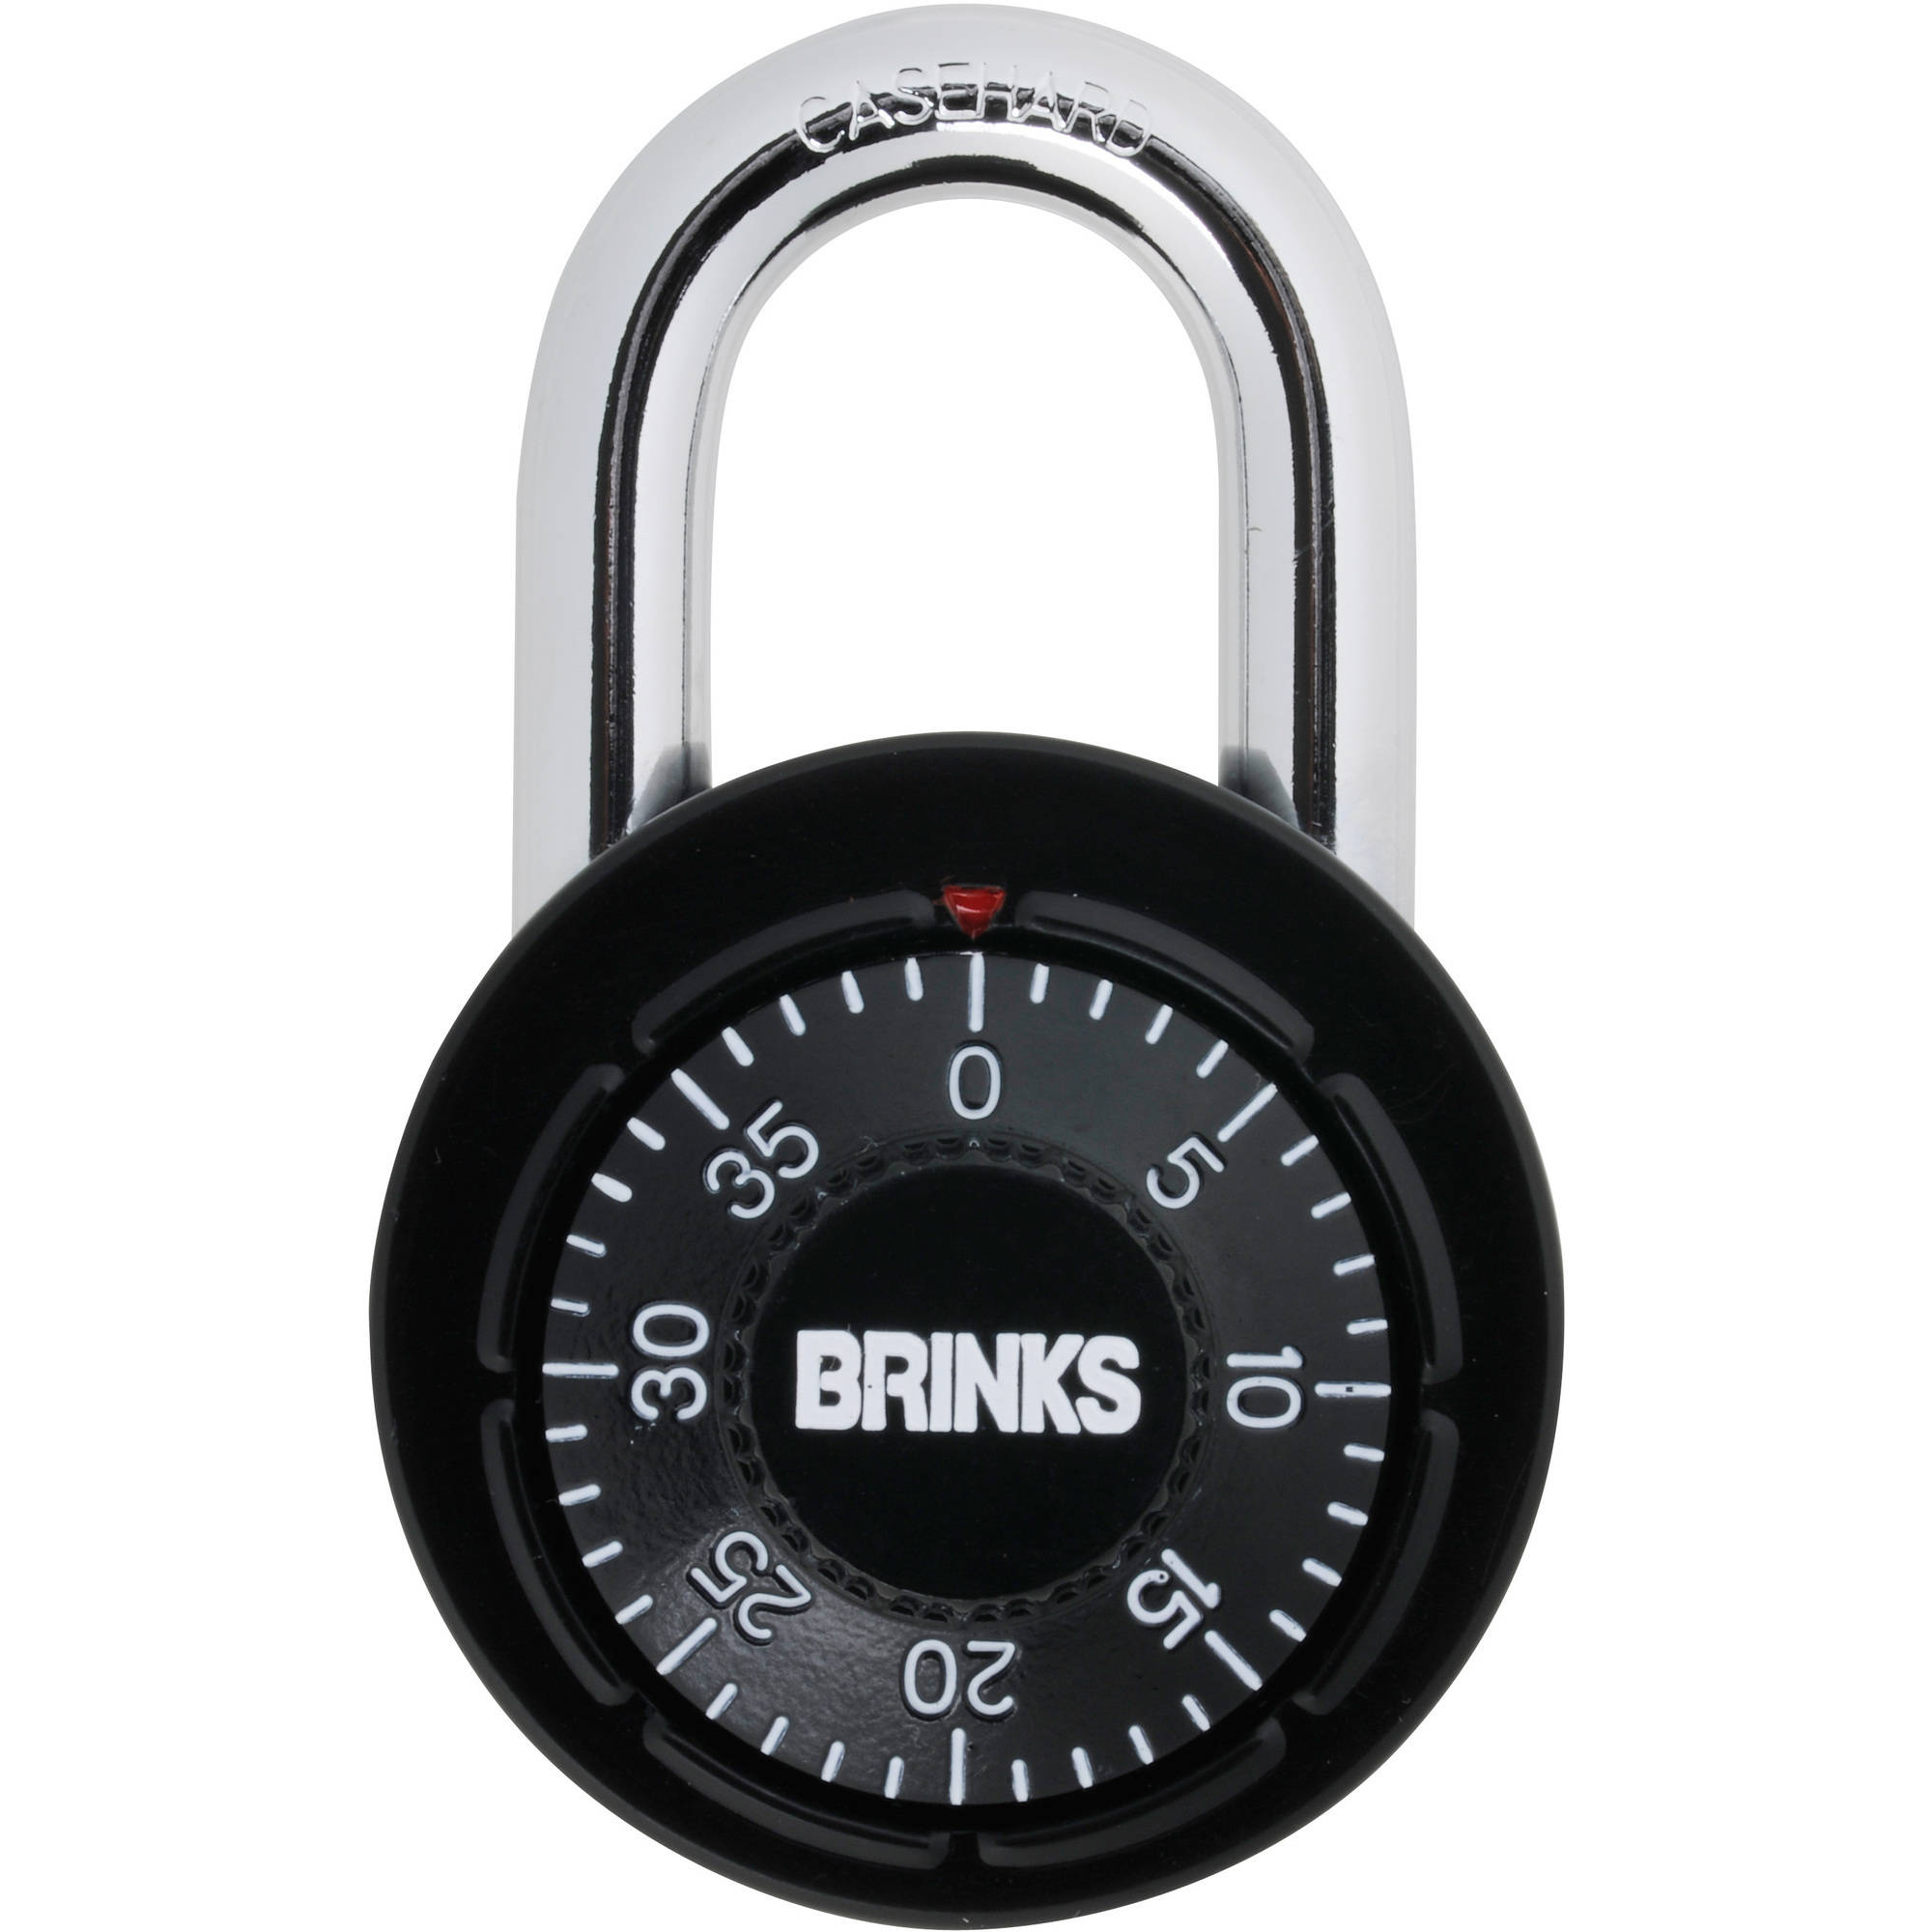 Brinks Dial Combination Locker Padlock, Black